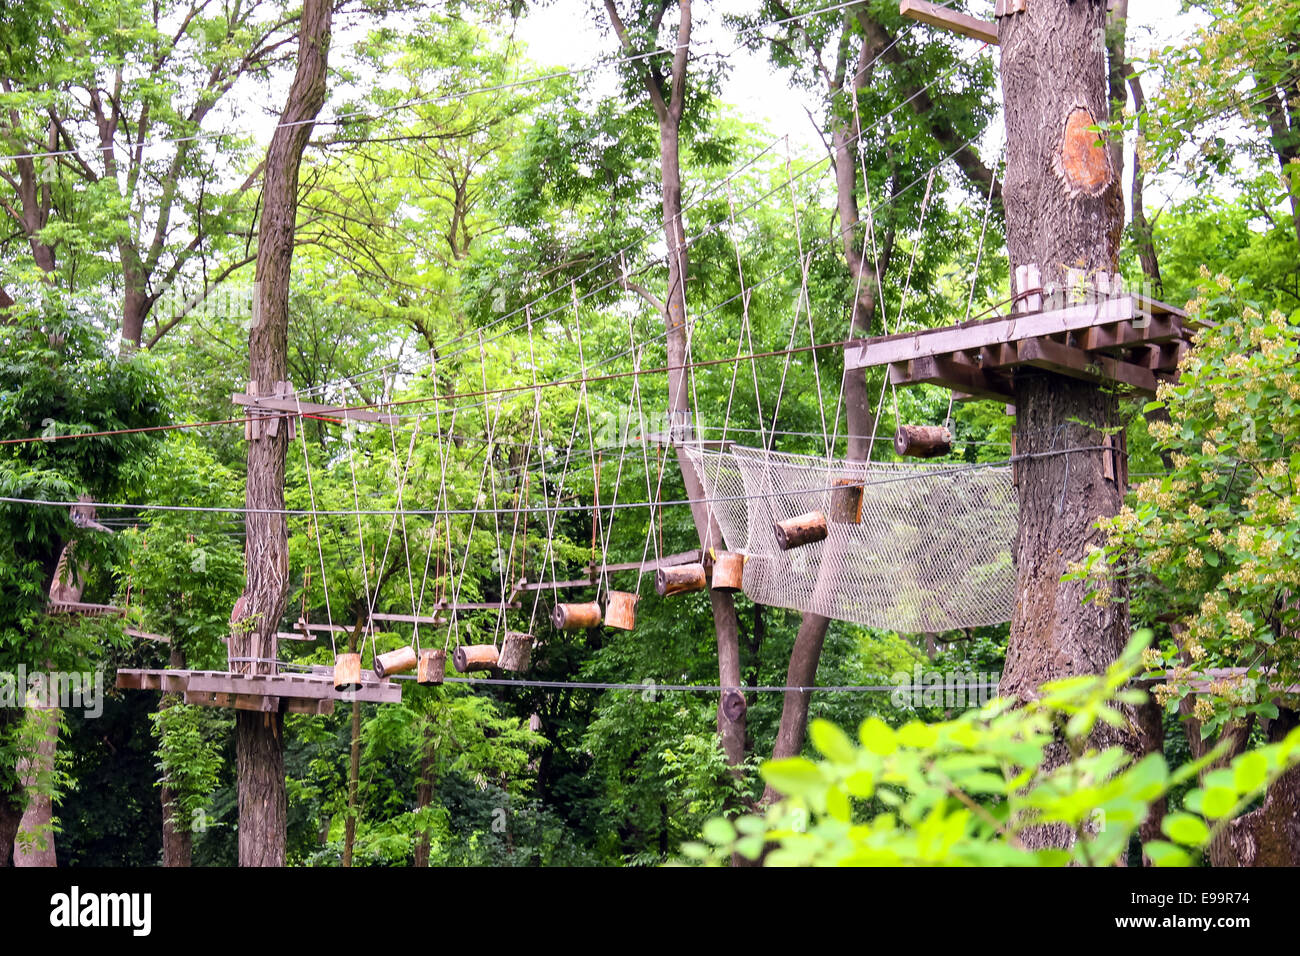 Think, rope swinging bridge pictures